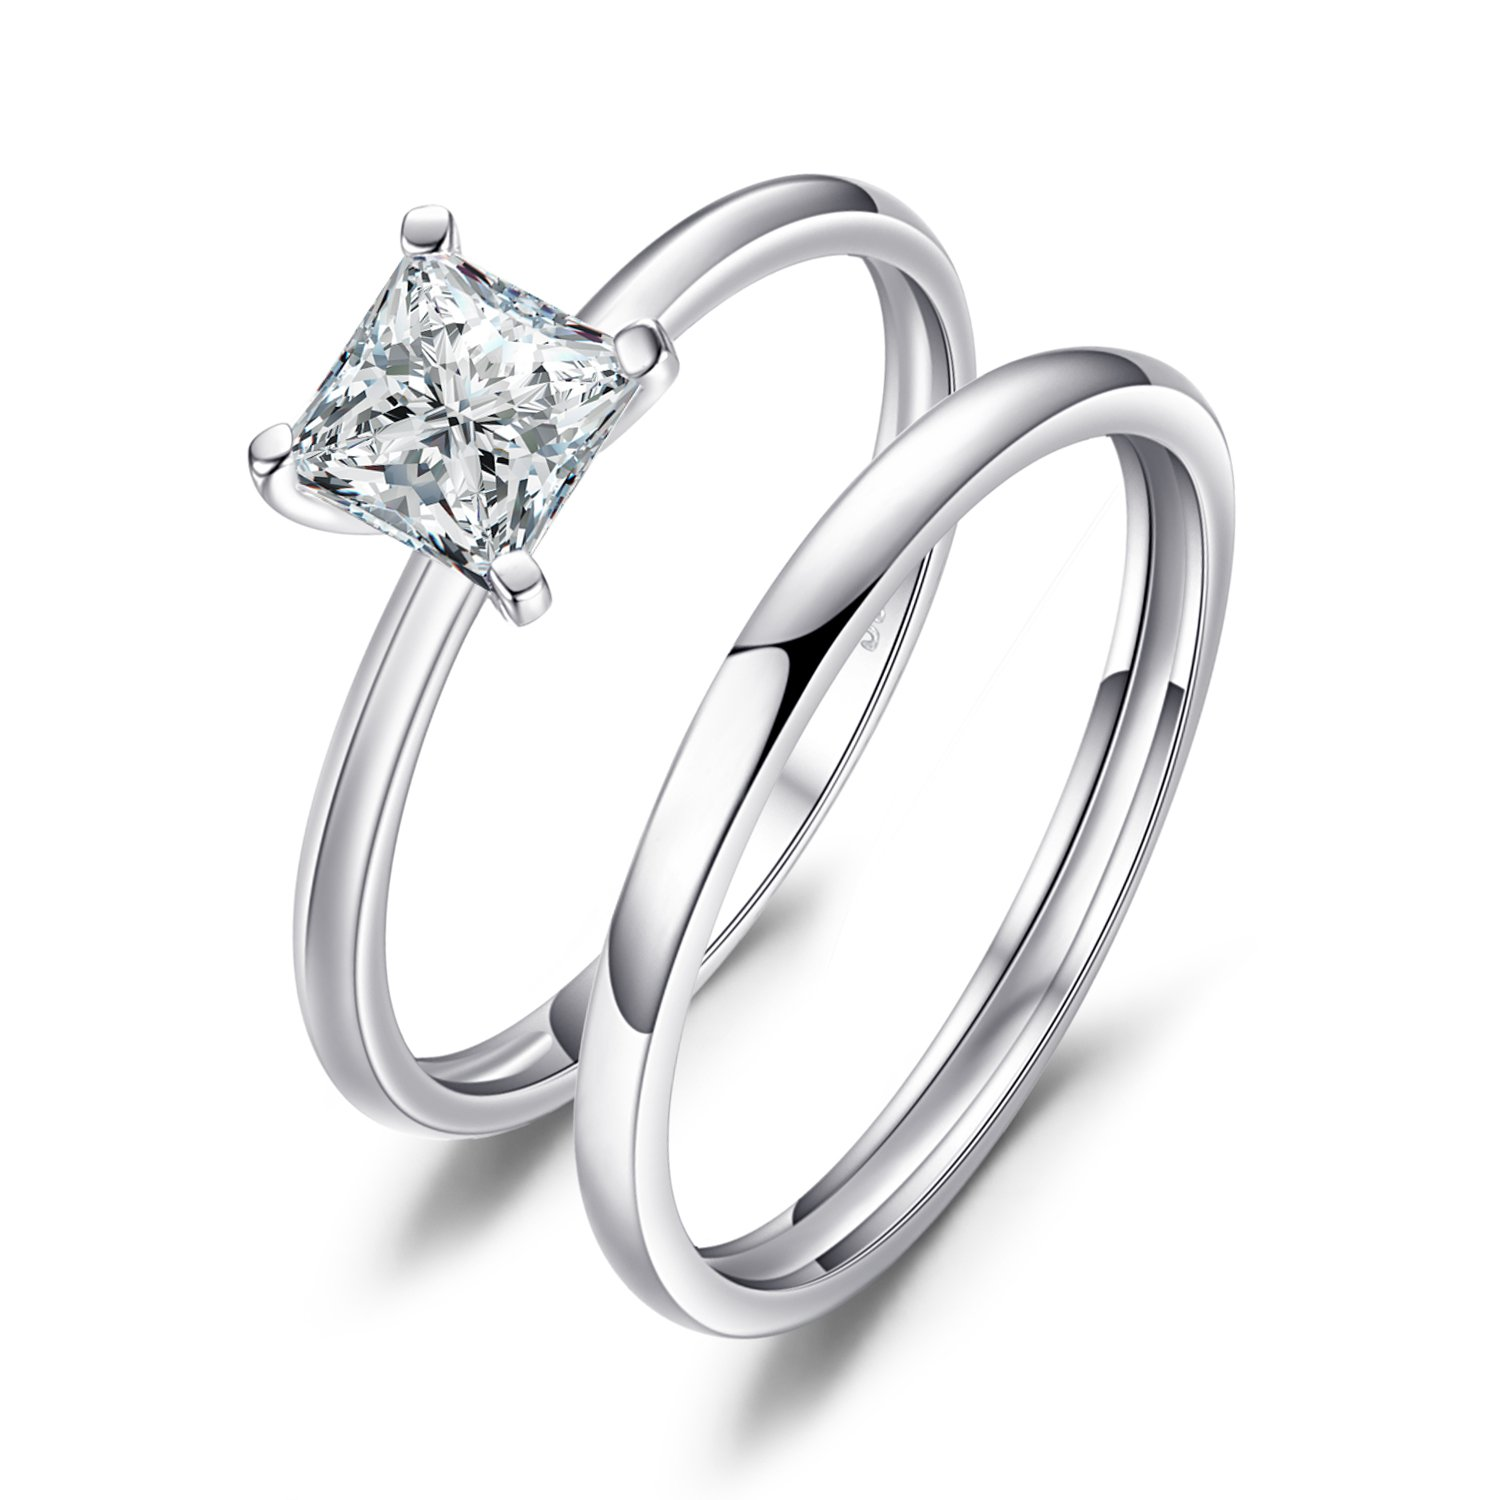 Engagement And Wedding Rings.Jewelrypalace Wedding Rings Wedding Bands Solitaire Engagement Rings For Women Anniversary Promise Ring Bridal Sets Princess Cubic Zirconia 925